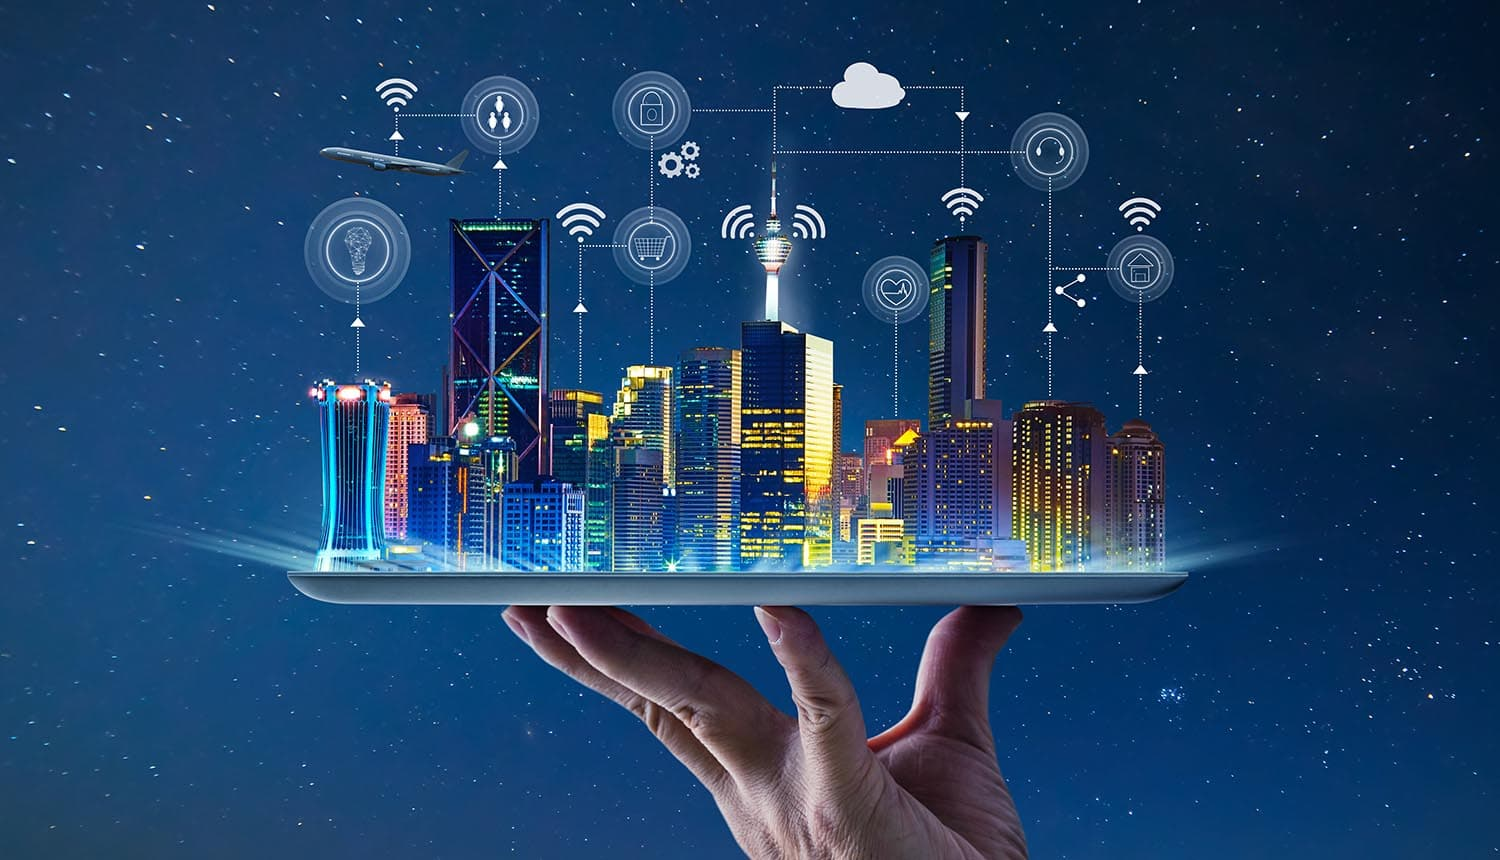 How Data is used in Smart Cities